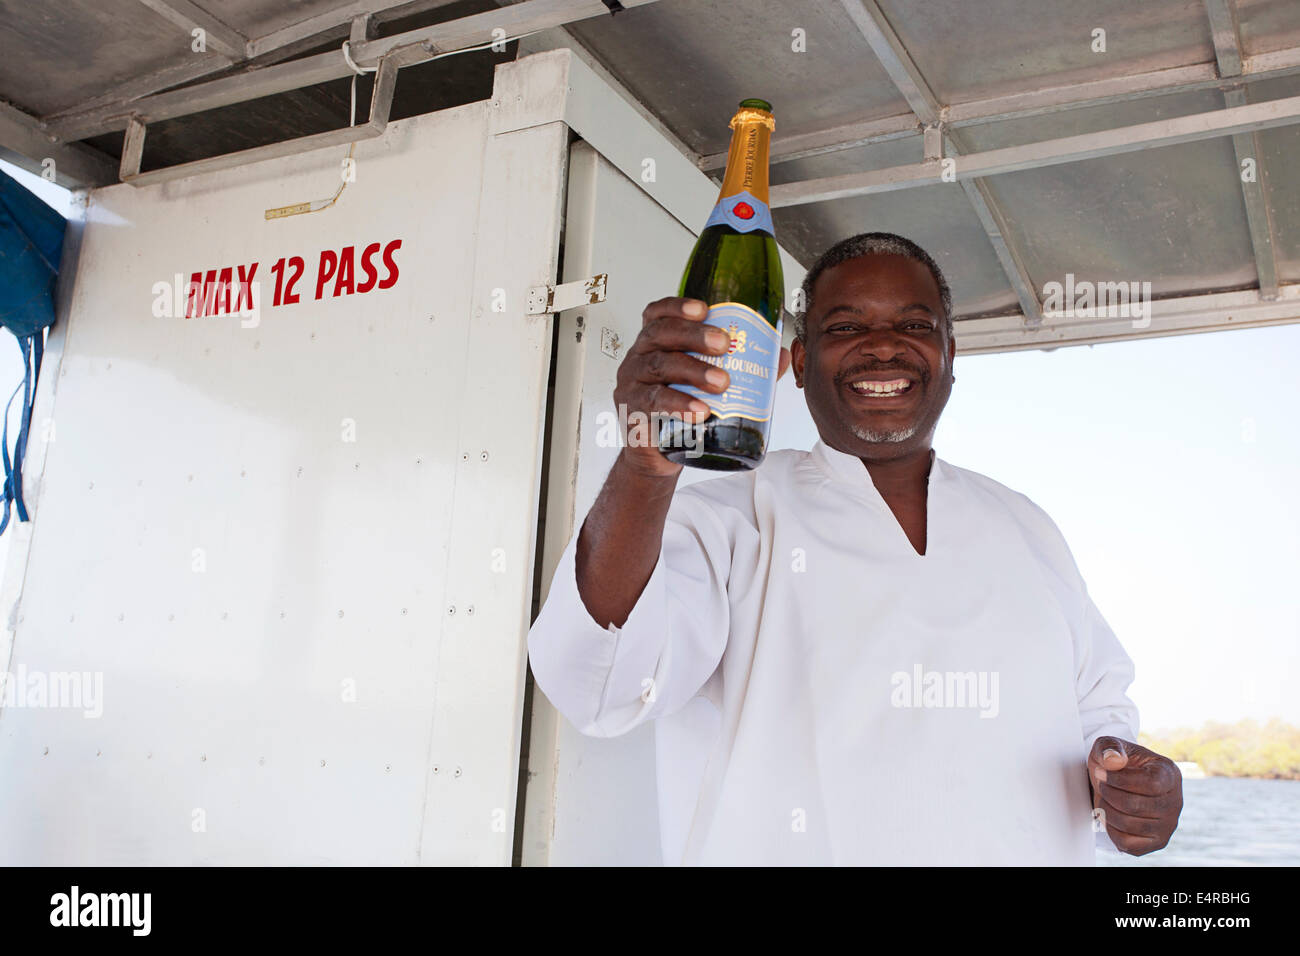 Captain of the boat holding up a bottle of Champaign and smiling - Stock Image